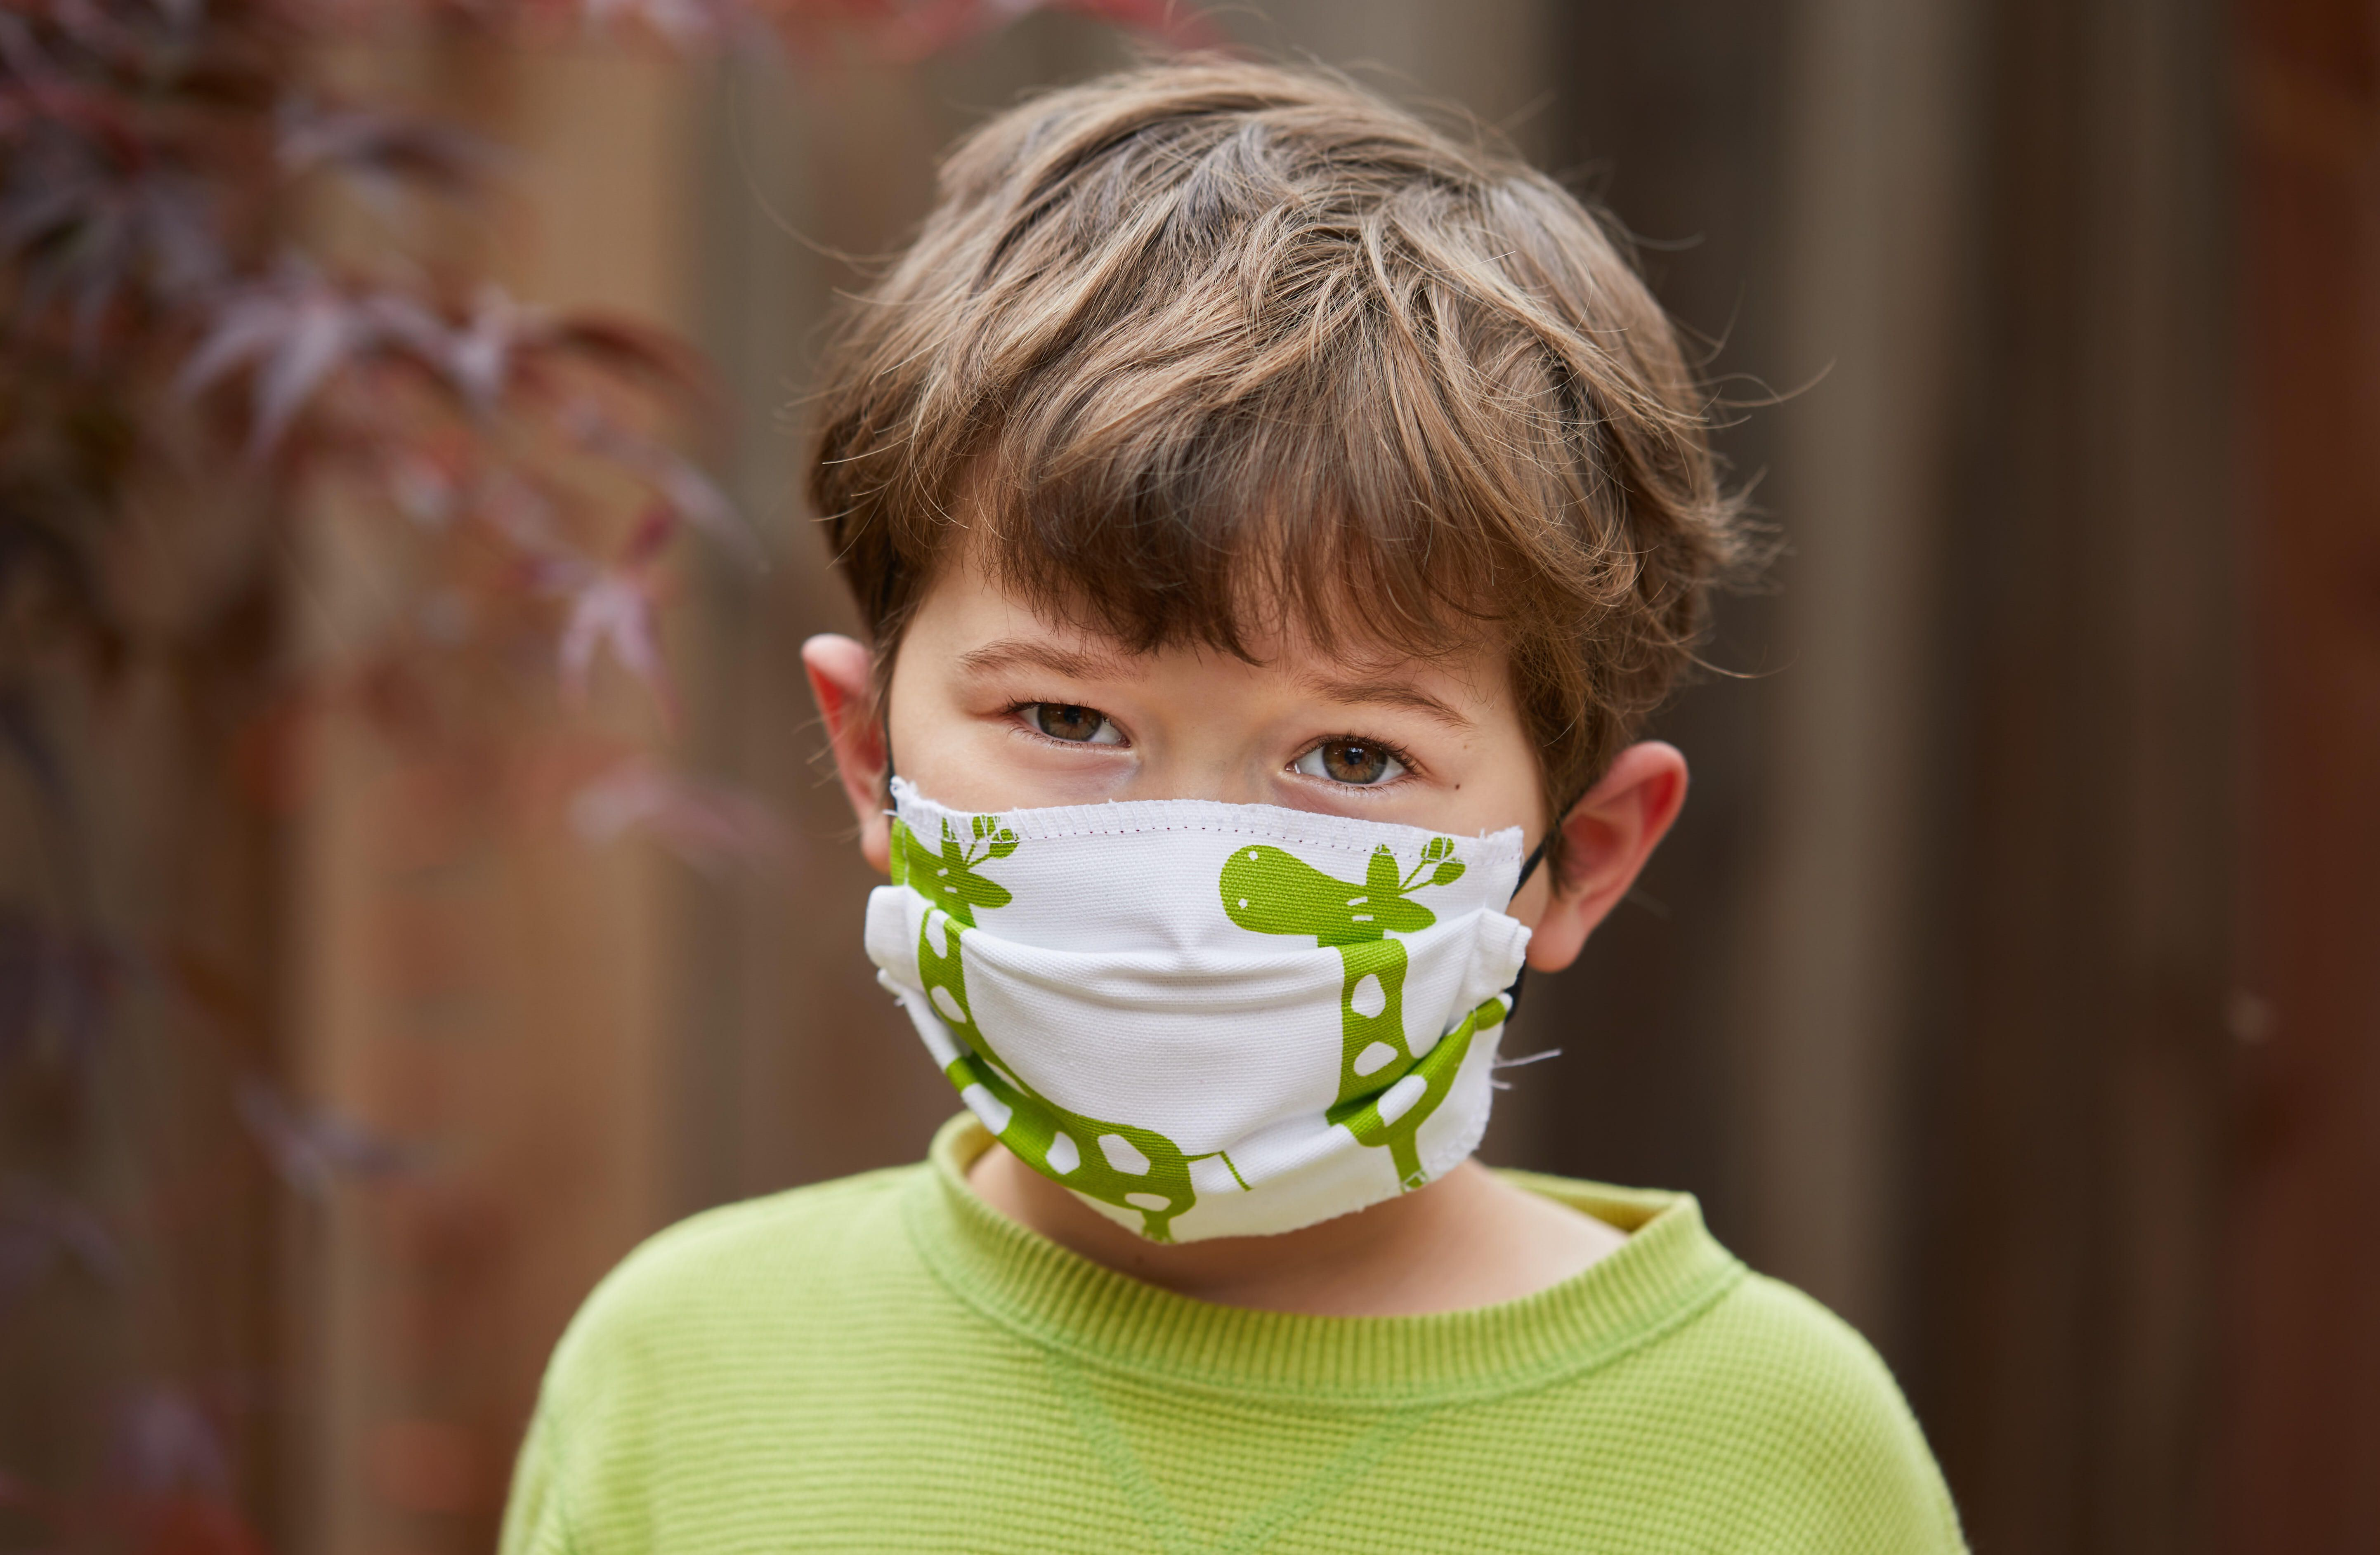 A boy wears a handmade mask to try to reduce transmission of COVID-19, the disease caused by the coronavirus.